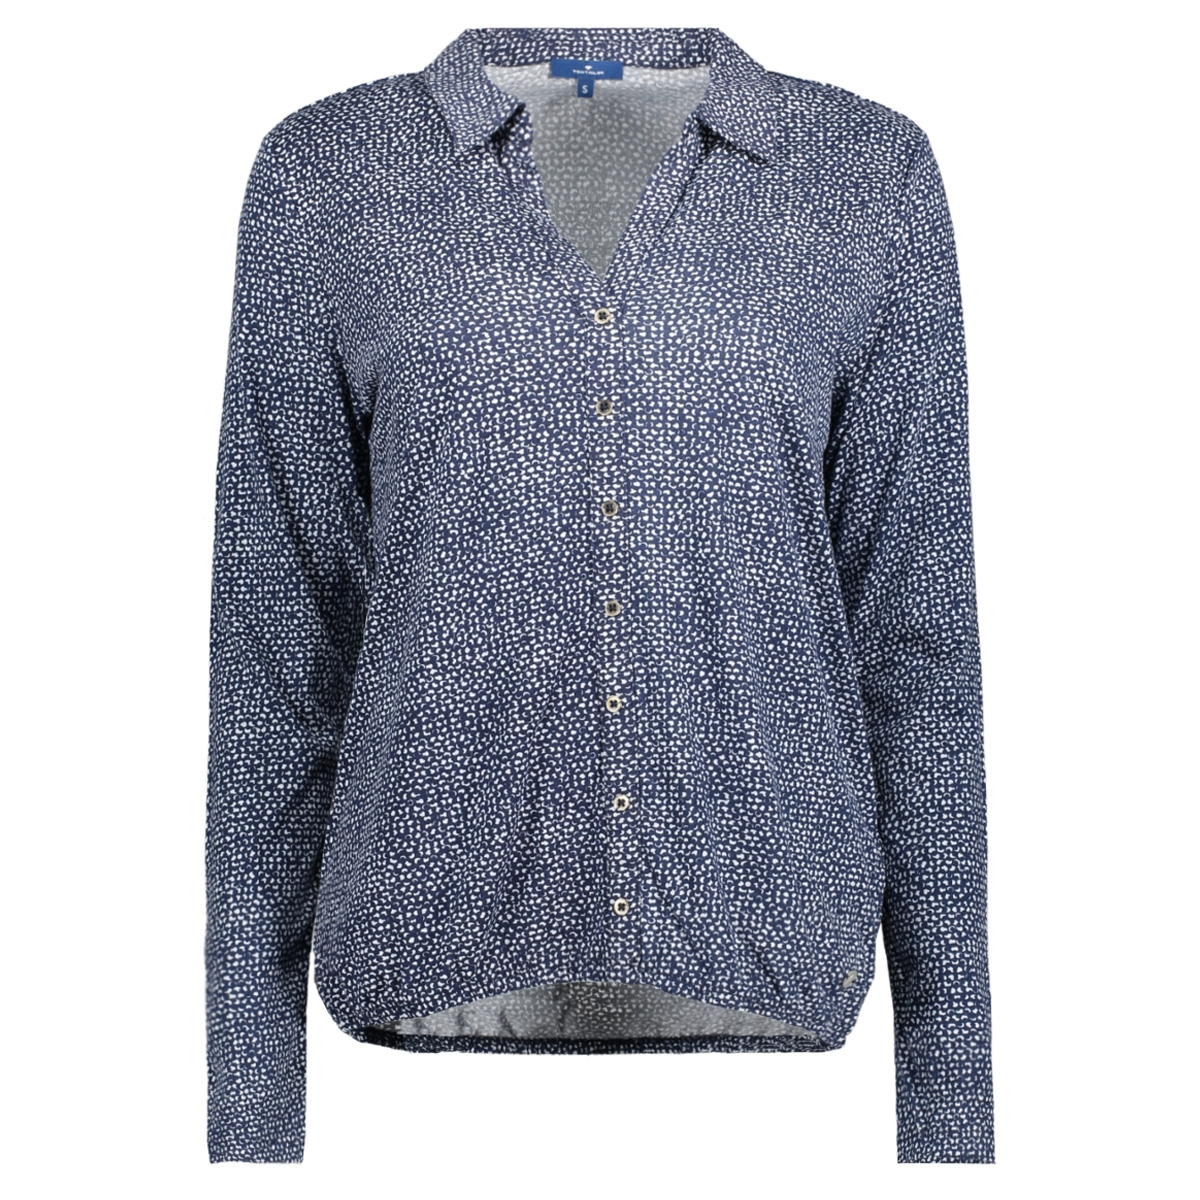 1039252.00.70 tom tailor blouse 6593